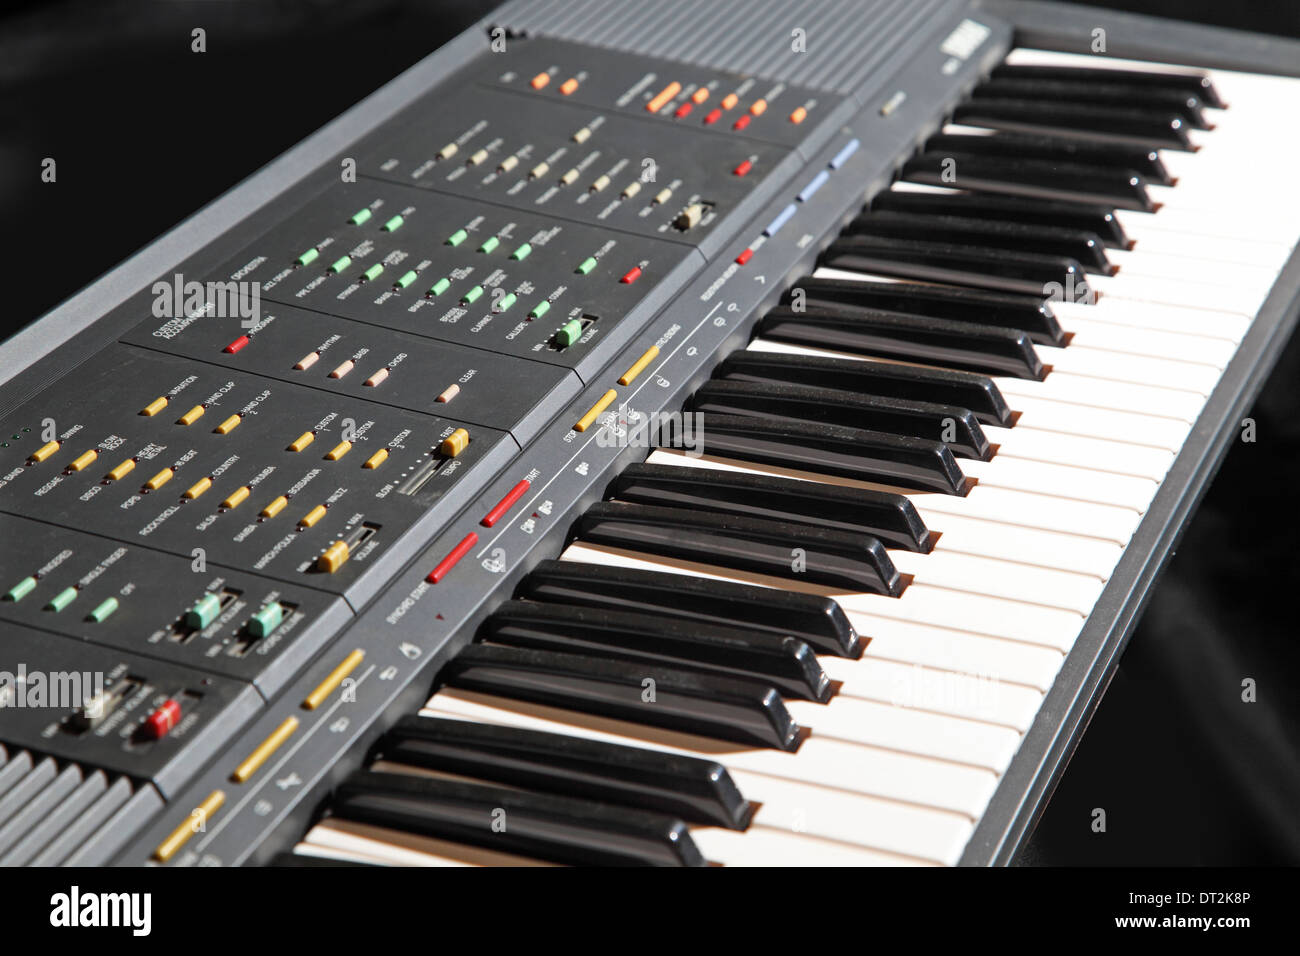 A Yamaha digital keyboard showing multiple buttons to control sounds, rhythms and automatic accompaniments - Stock Image